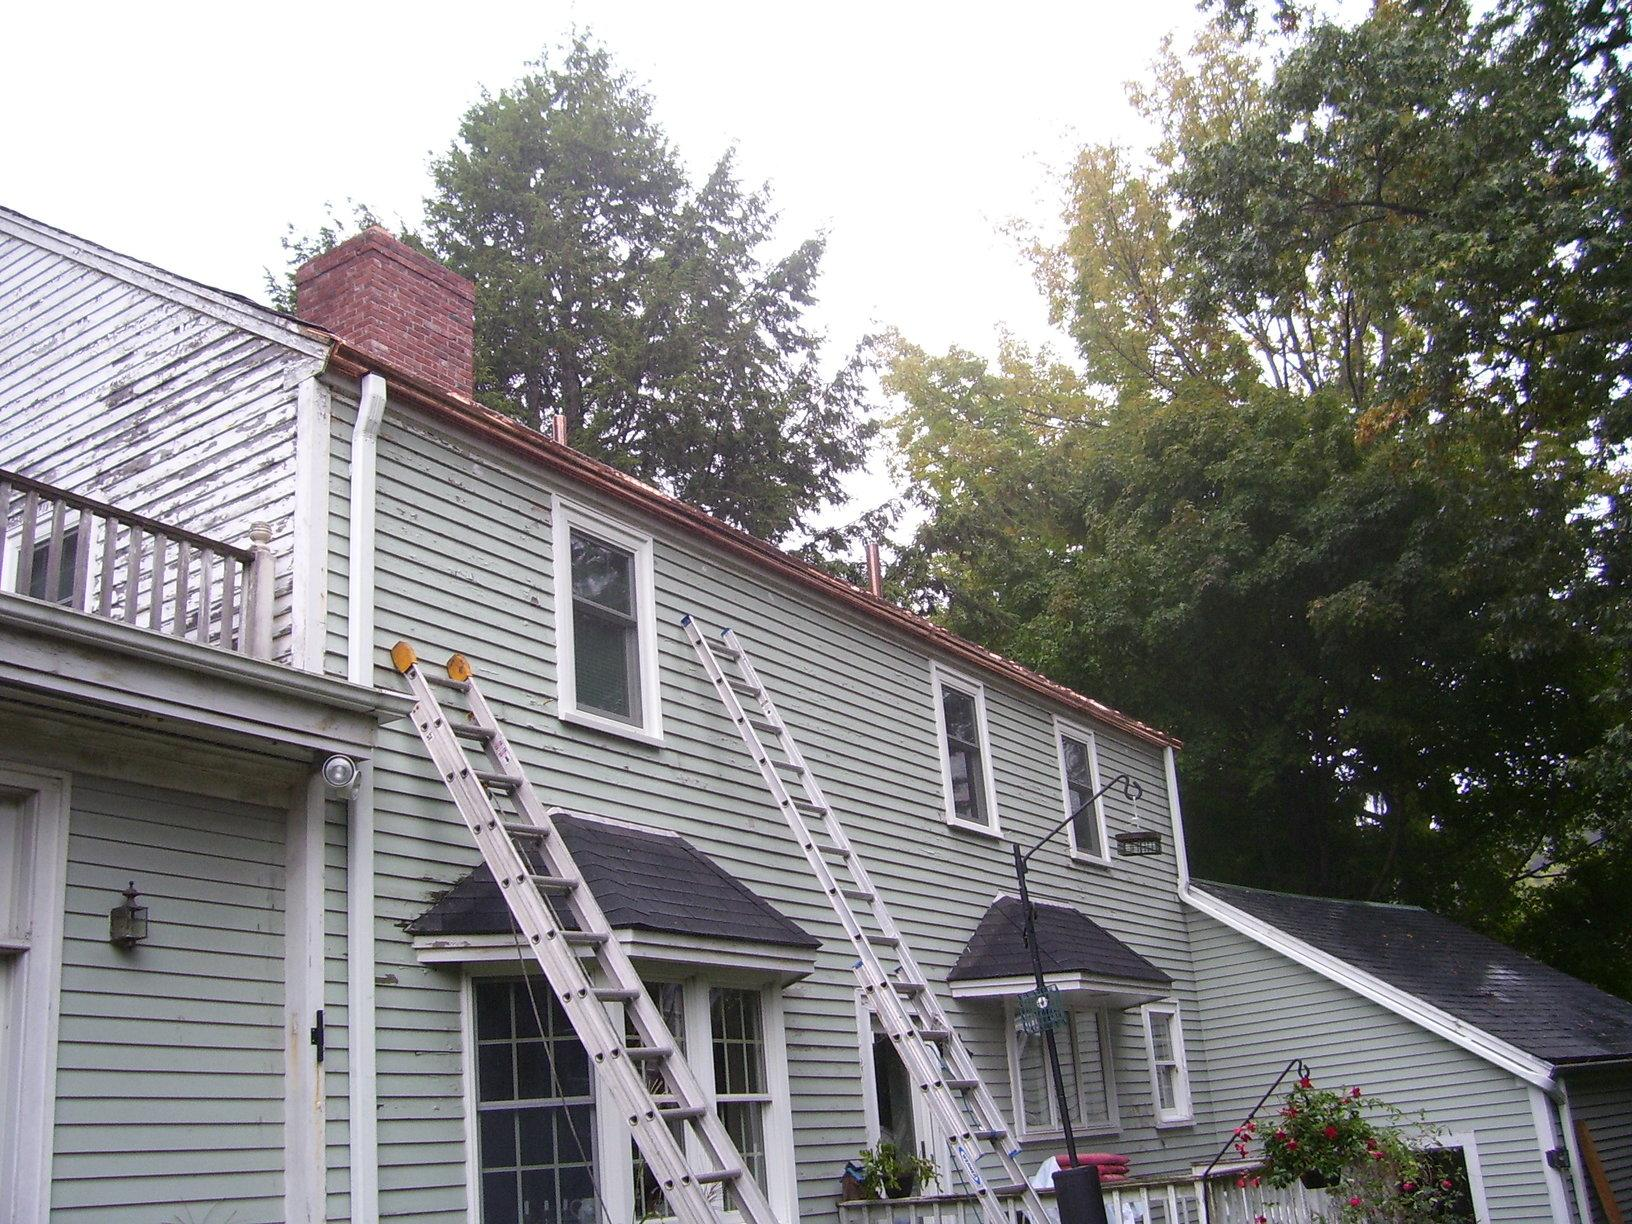 View of Gutters